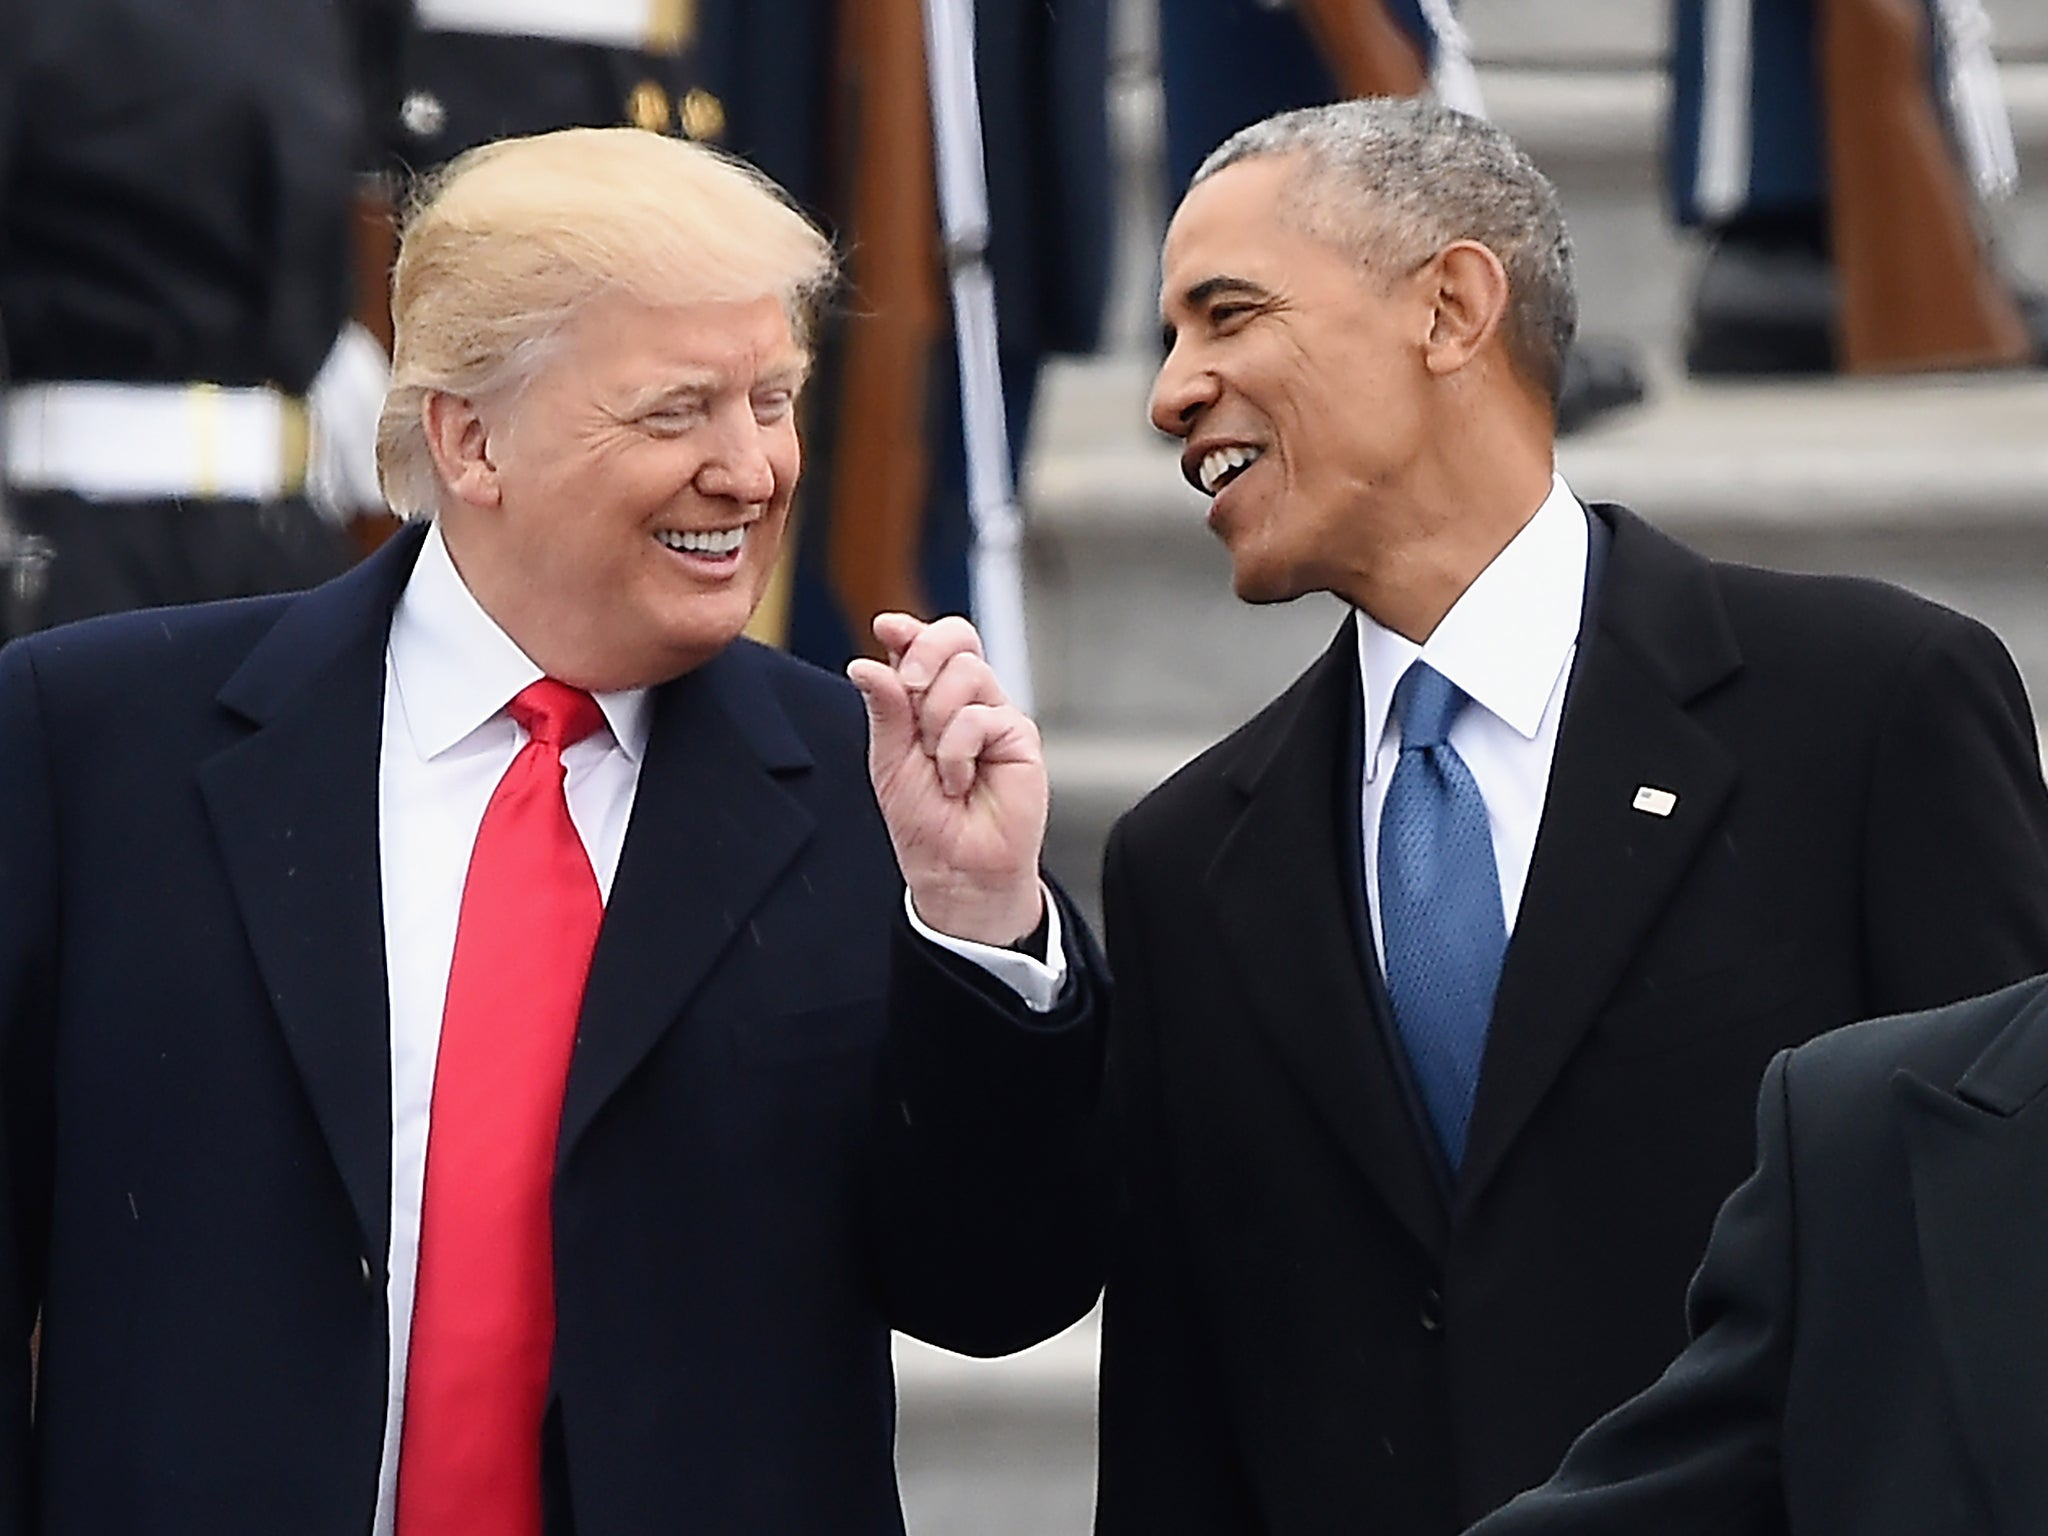 Barack Obama 'rolled his eyes' at Donald Trump's ...